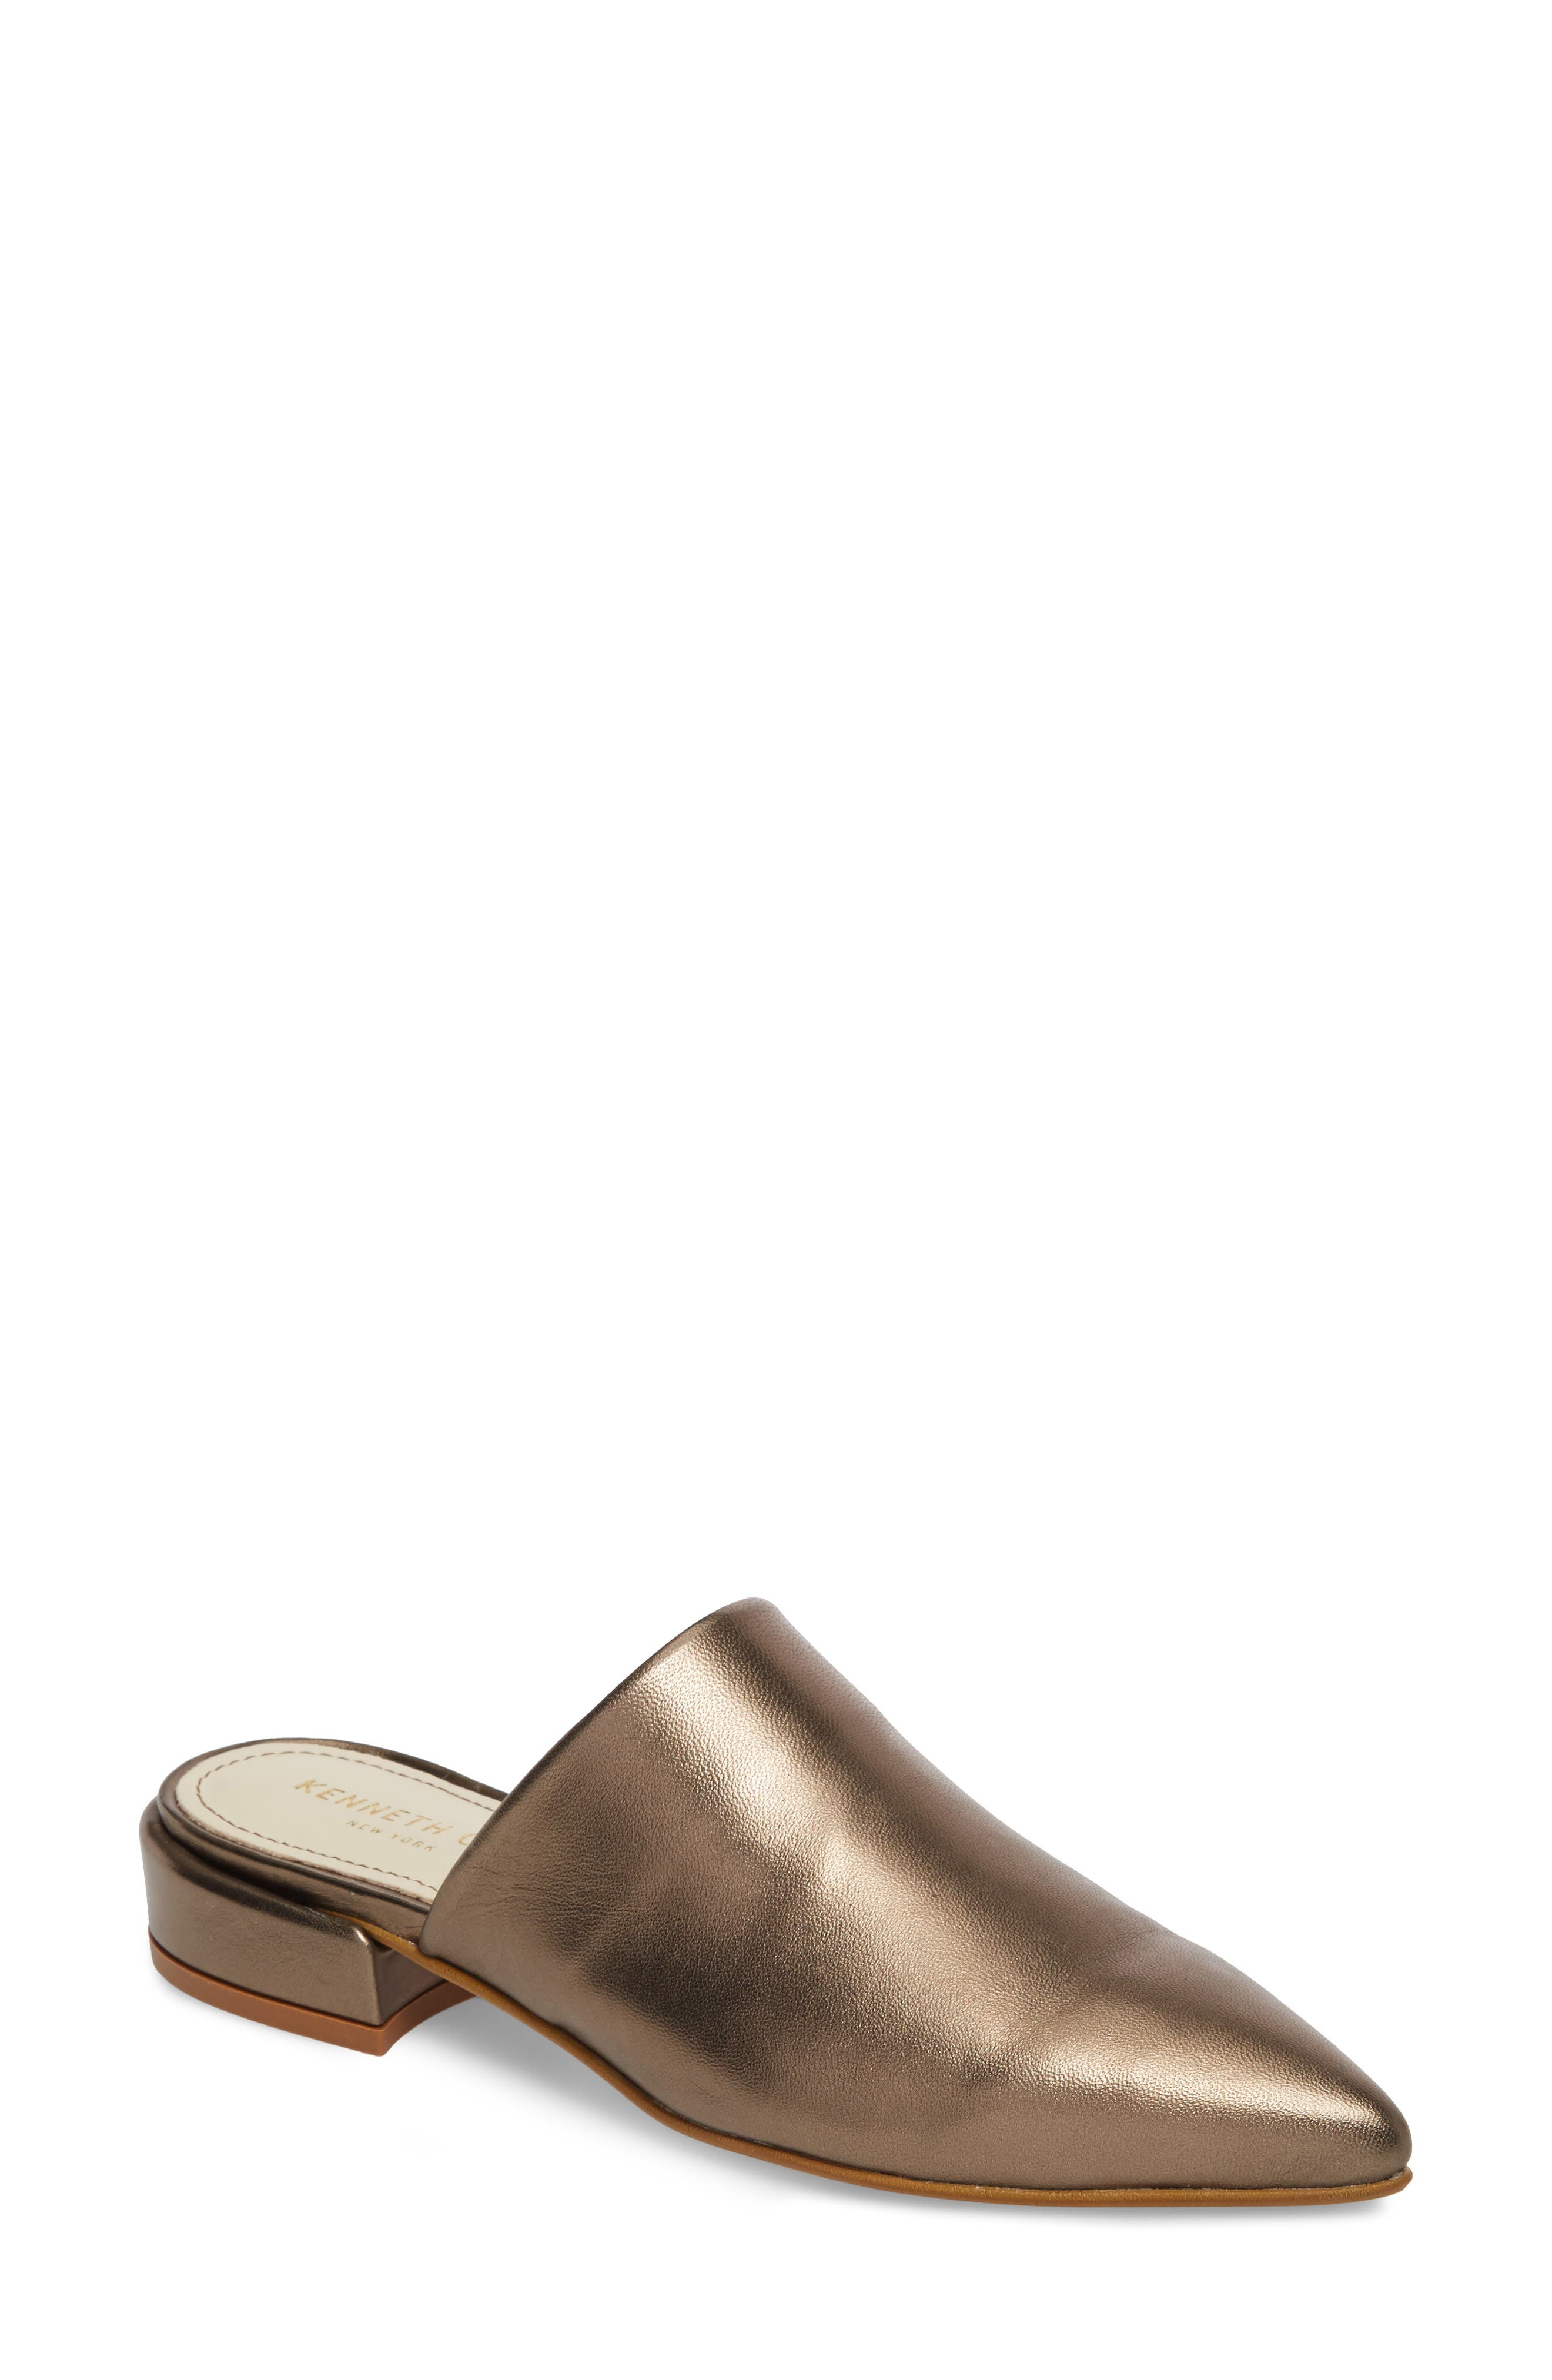 Main Image - Kenneth Cole New York Aisley Mule (Women)